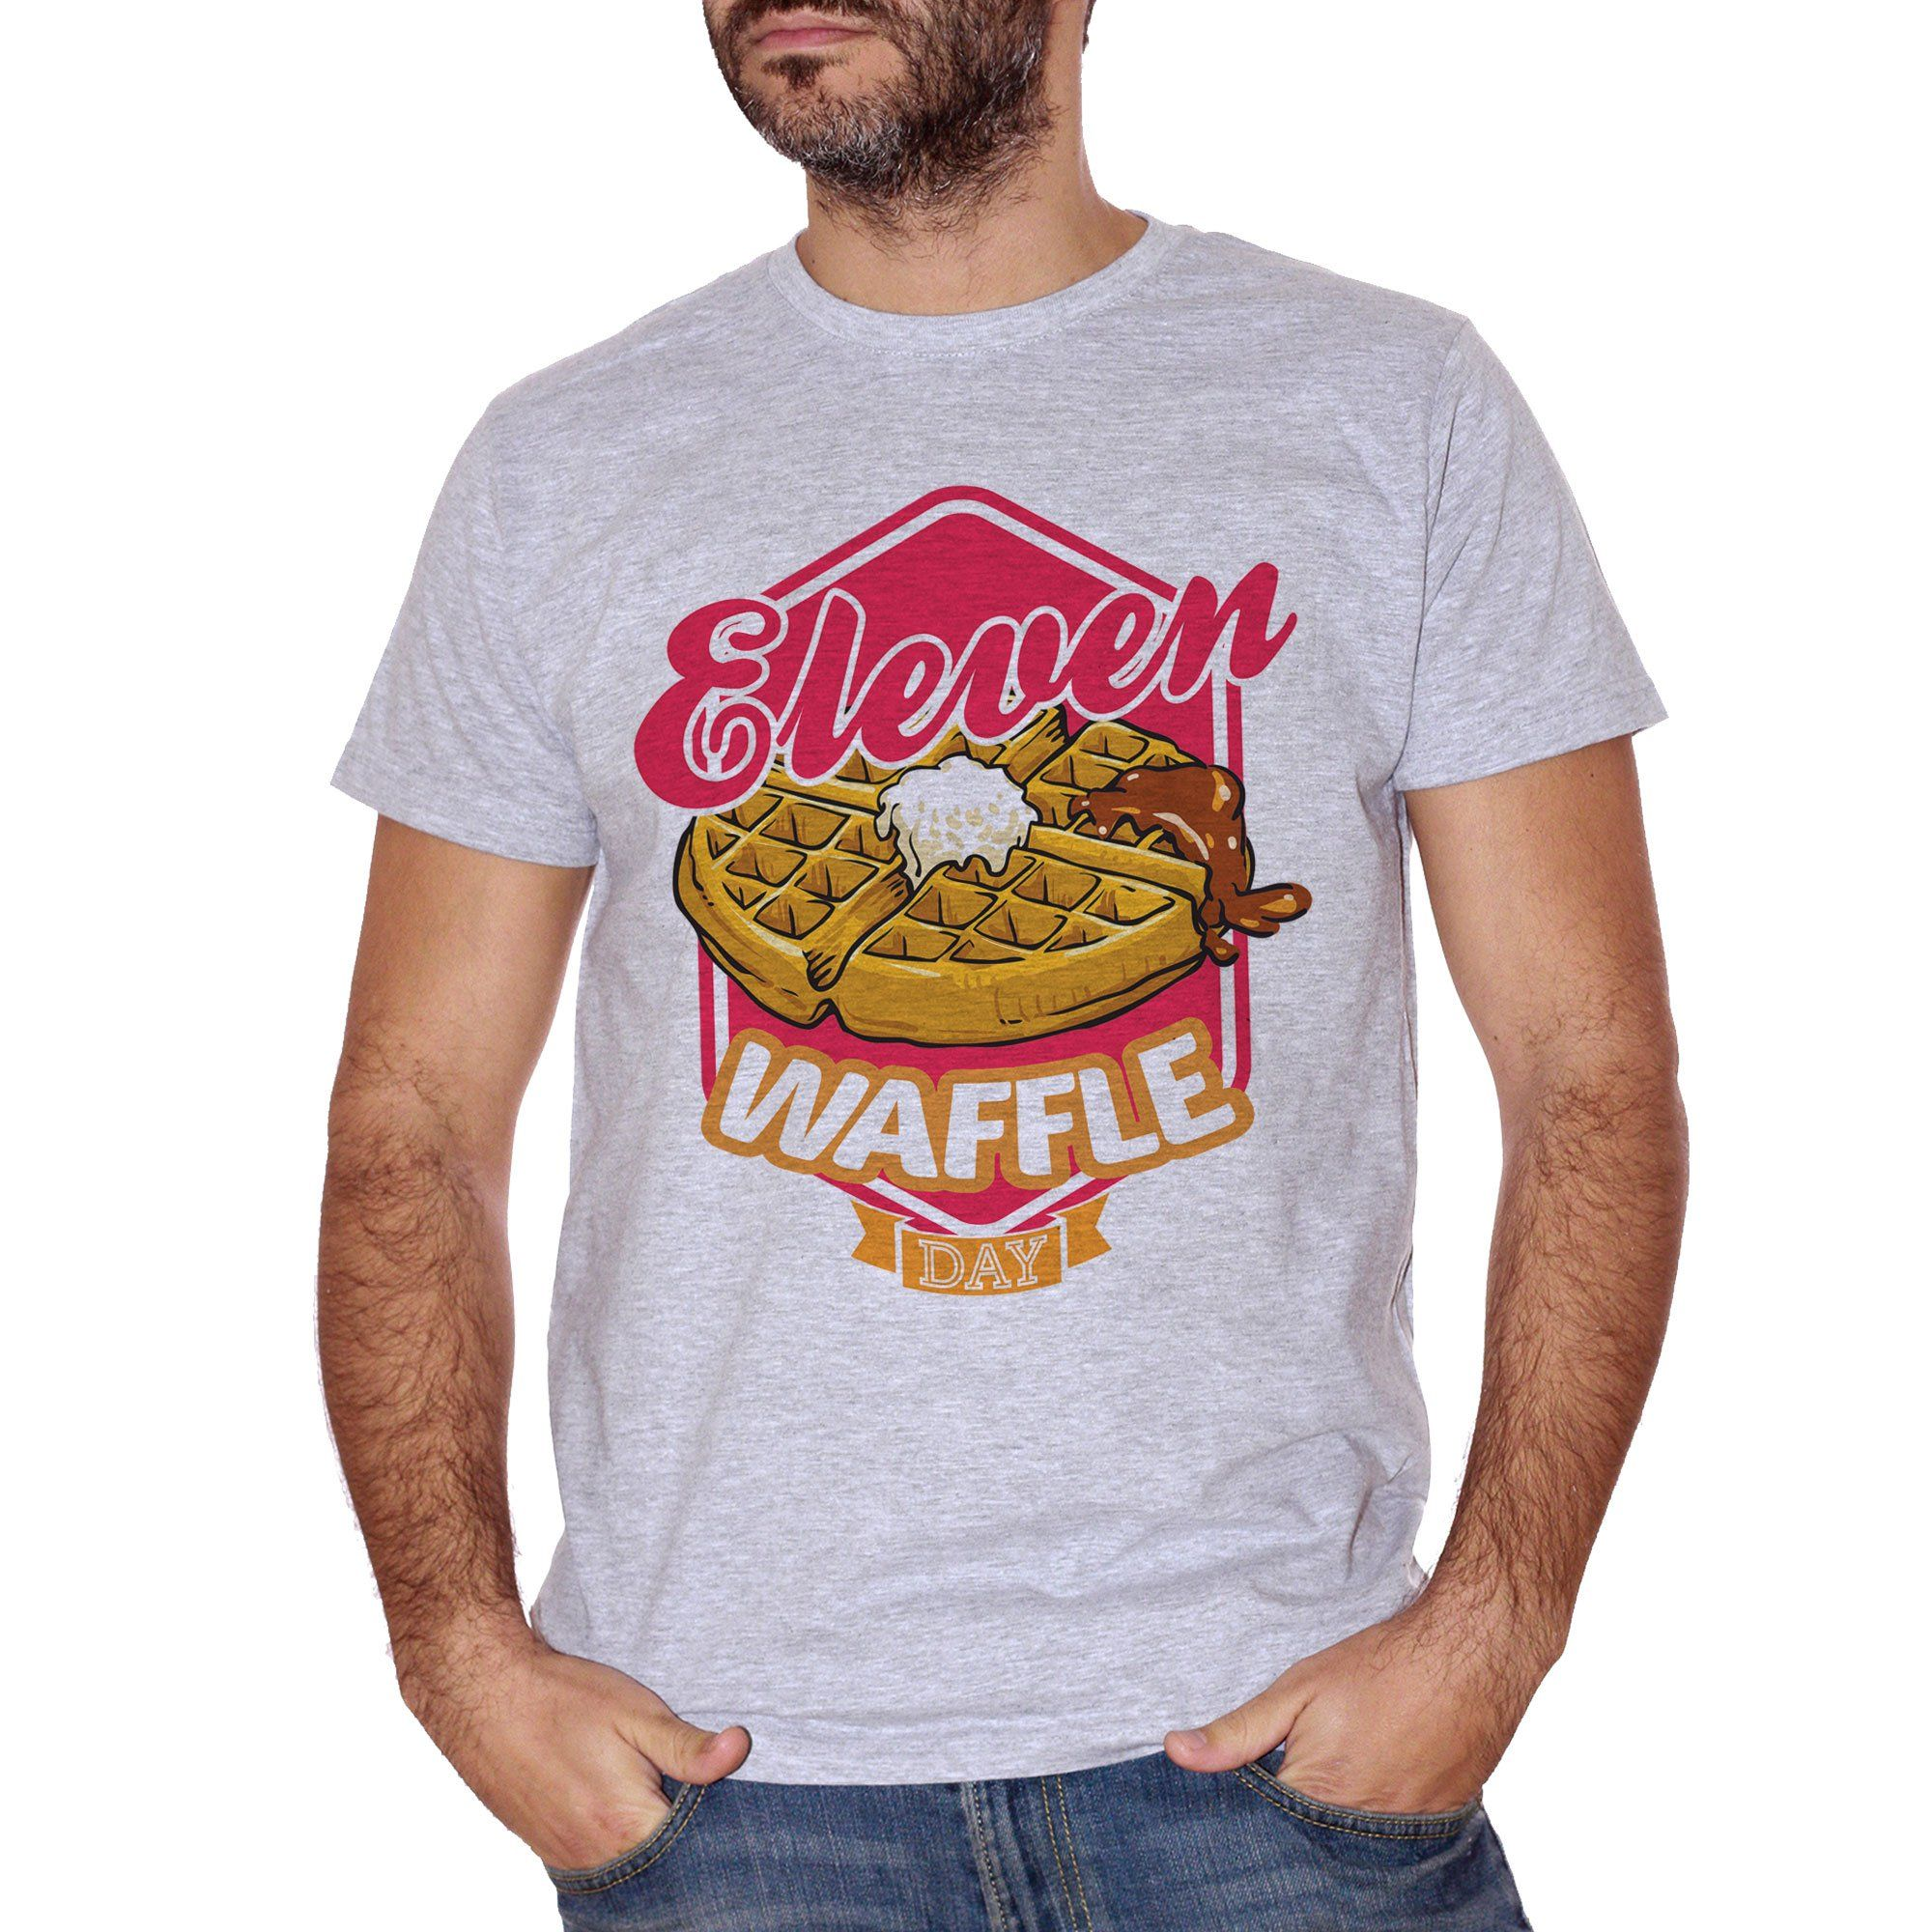 T-Shirt Stranger Things - Eleven Waffle Day - FILM Choose ur color - CUC #chooseurcolor